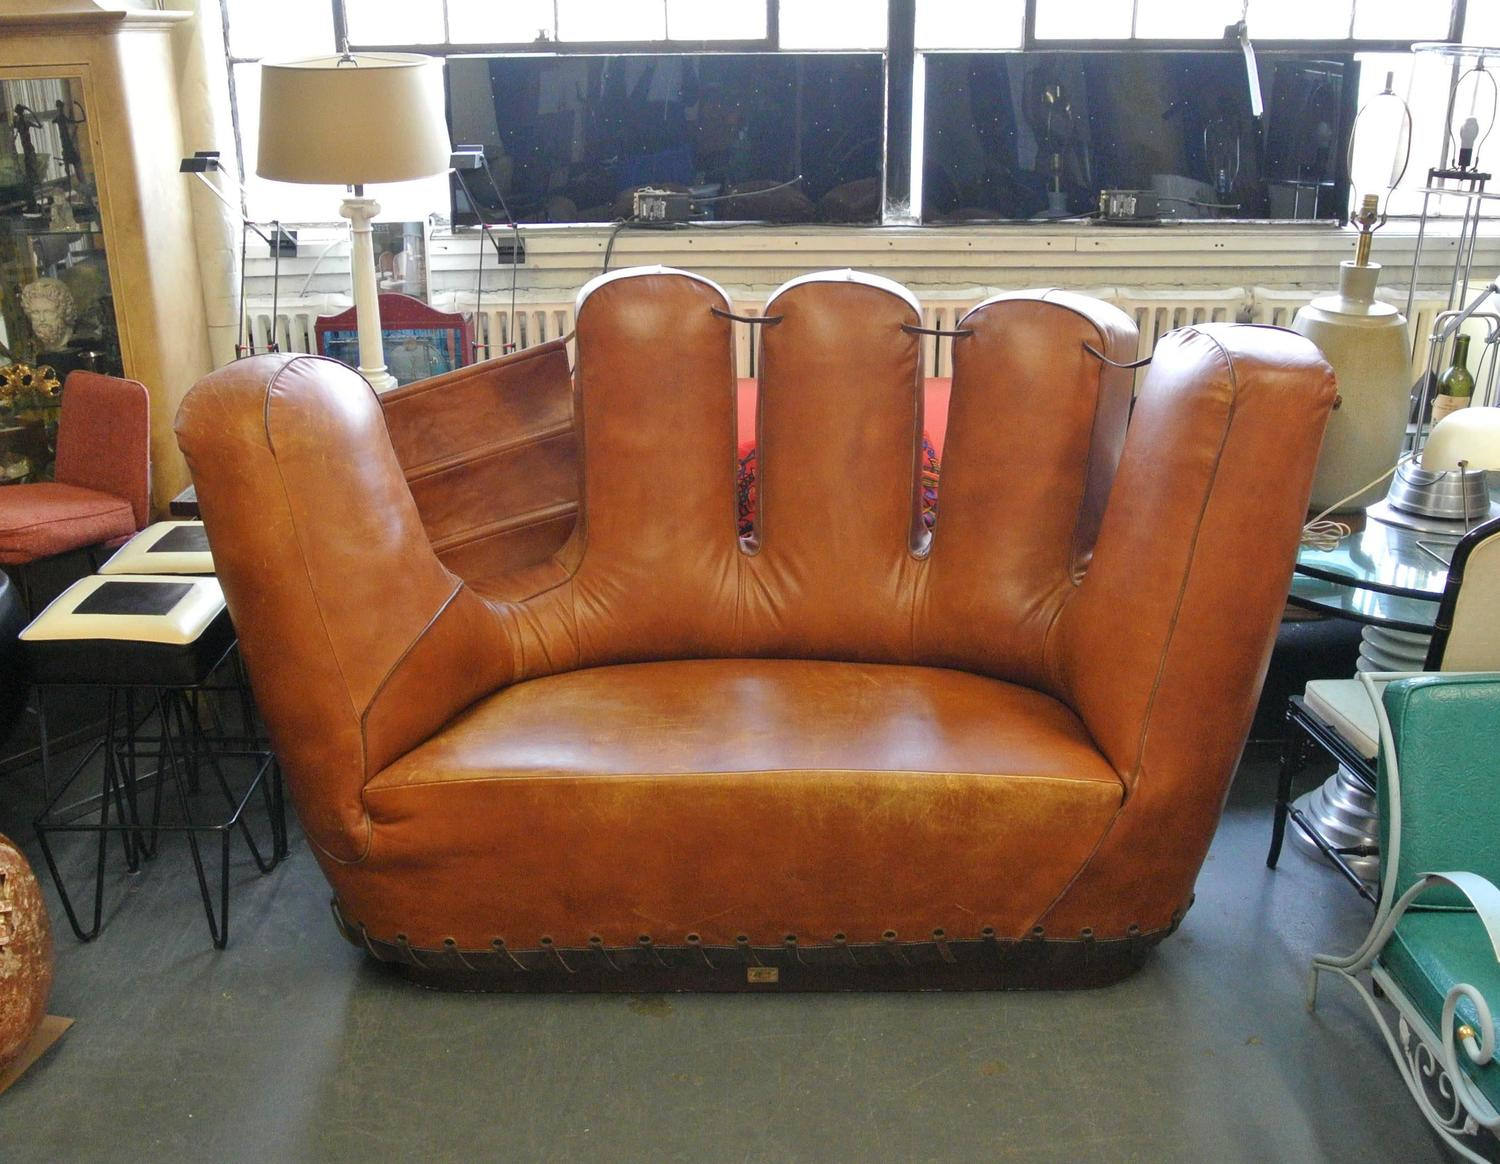 Stiles brothers leather baseball glove sofa image 2 Baseball sofa